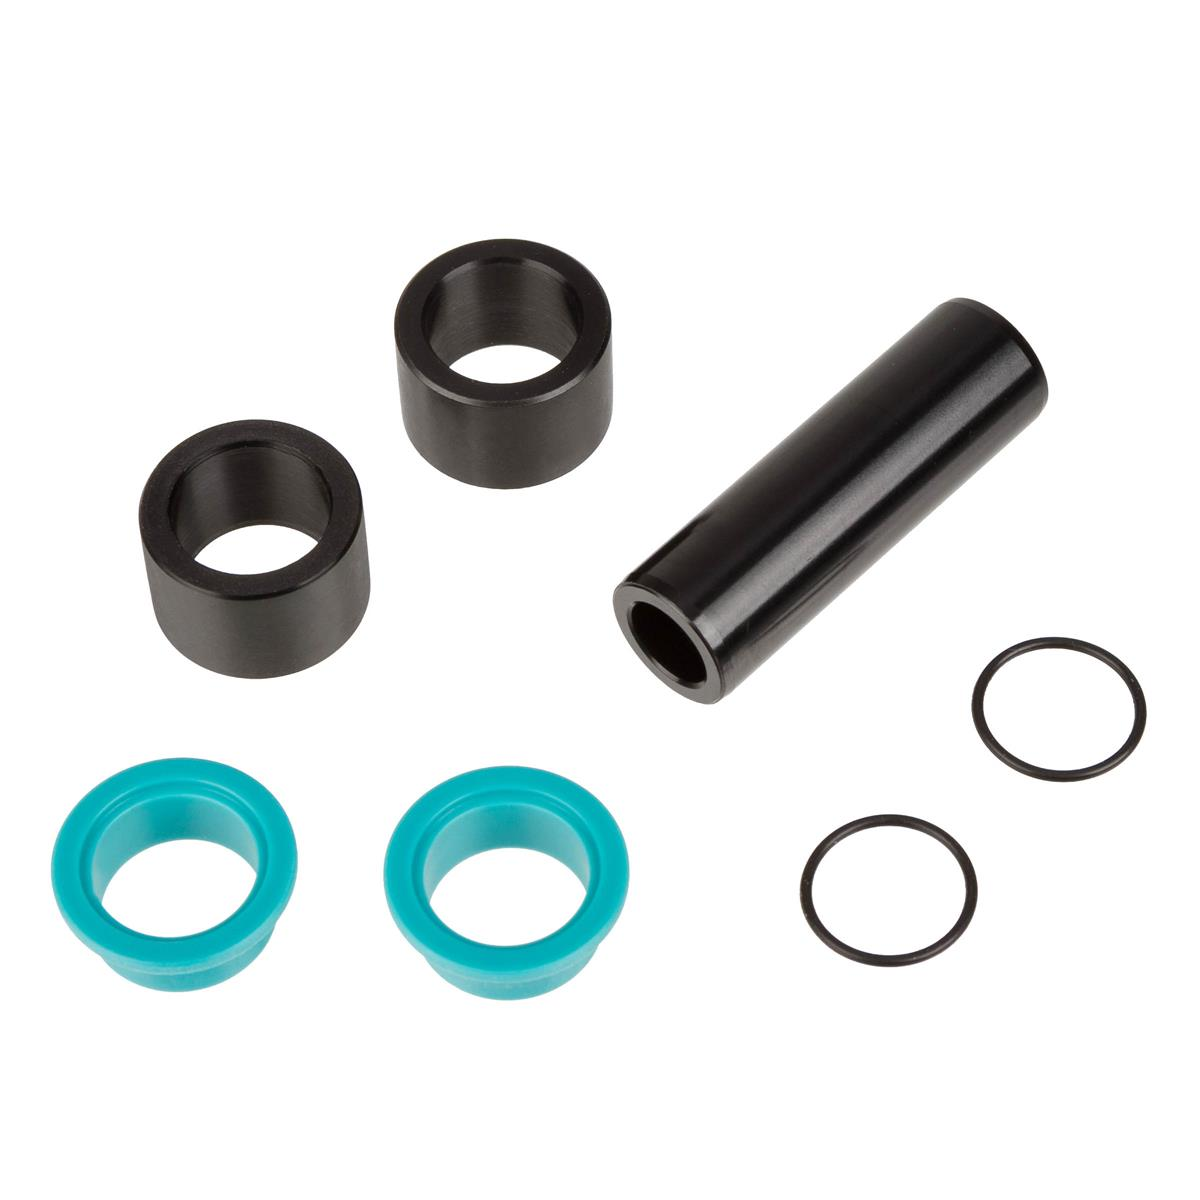 Racingbros Shock Bushing Kit 40 x 8 mm